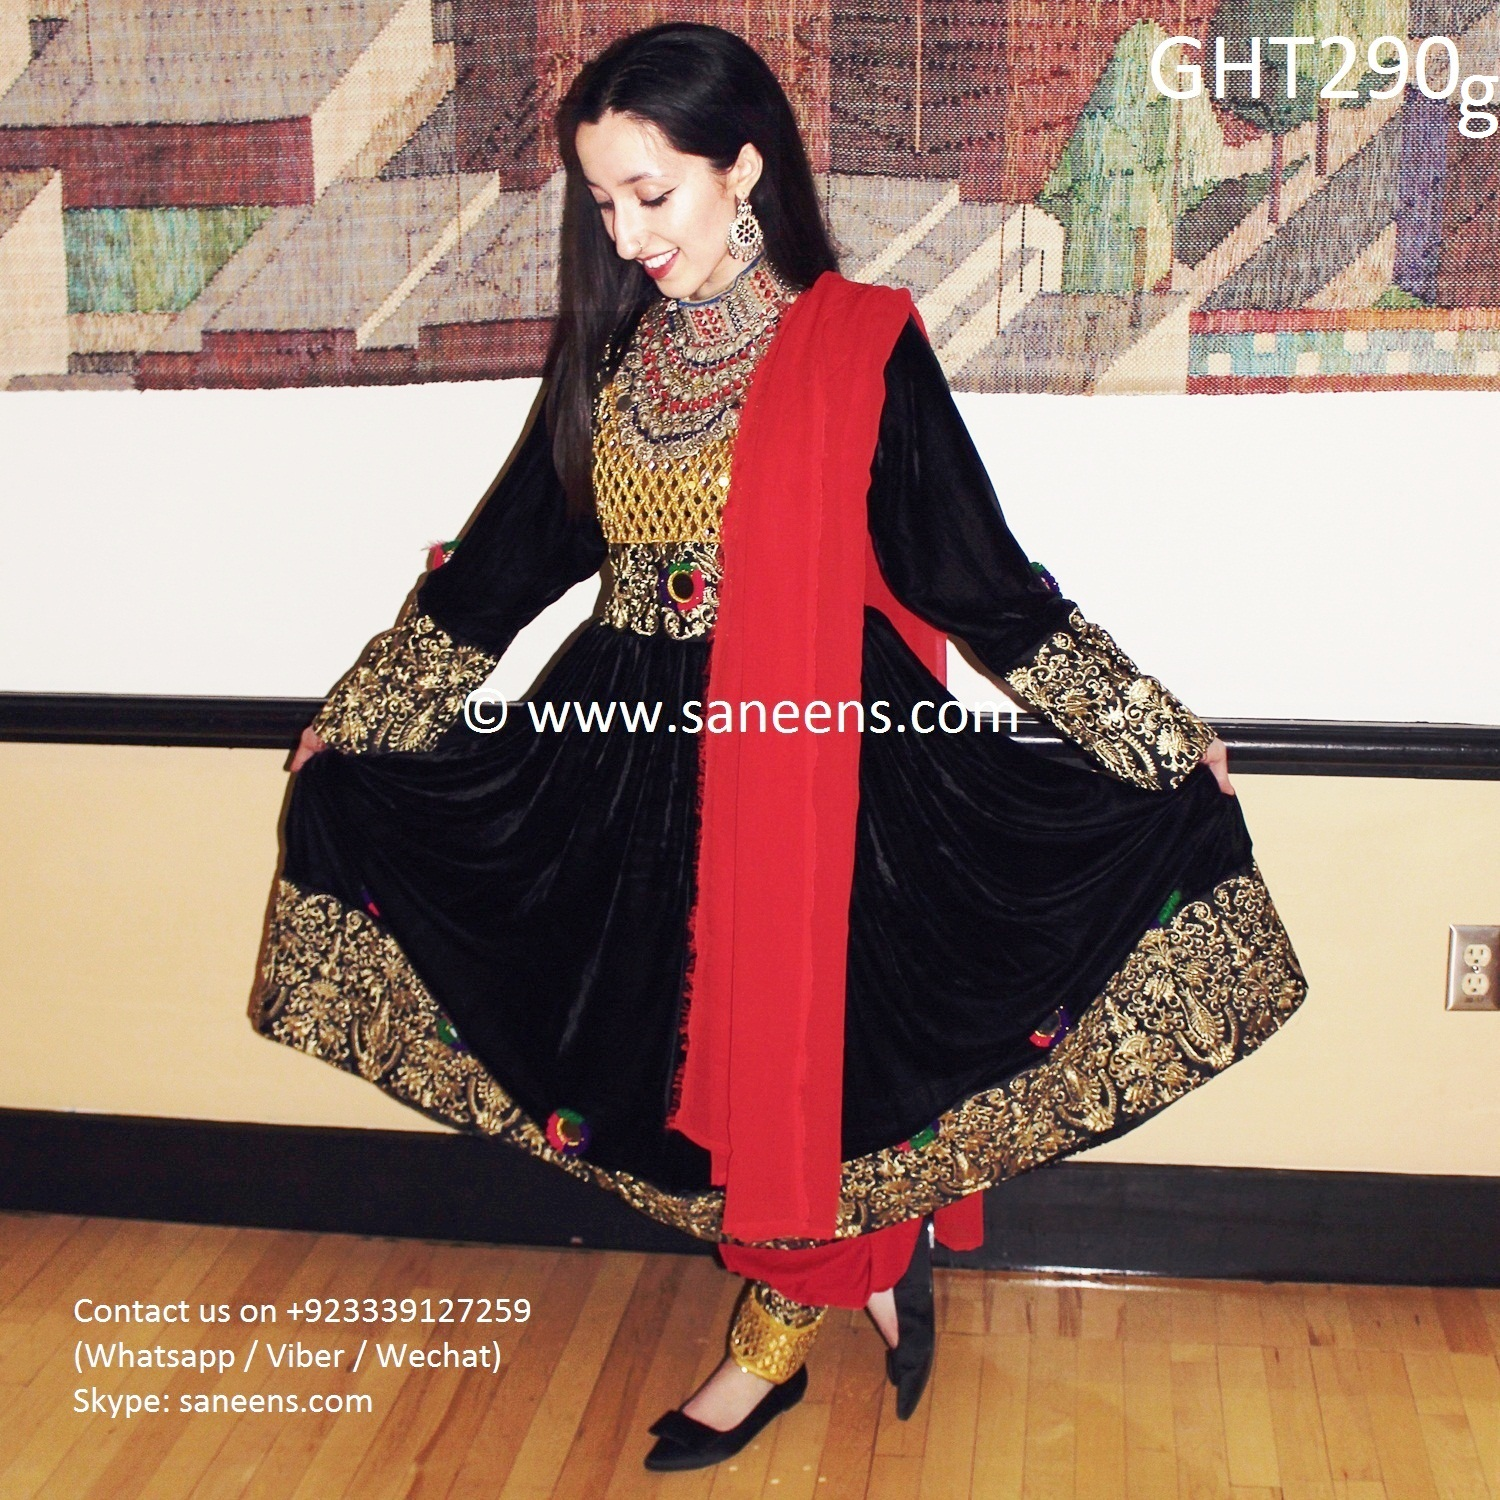 Afghan Wedding Gowns: Afghan Clothes